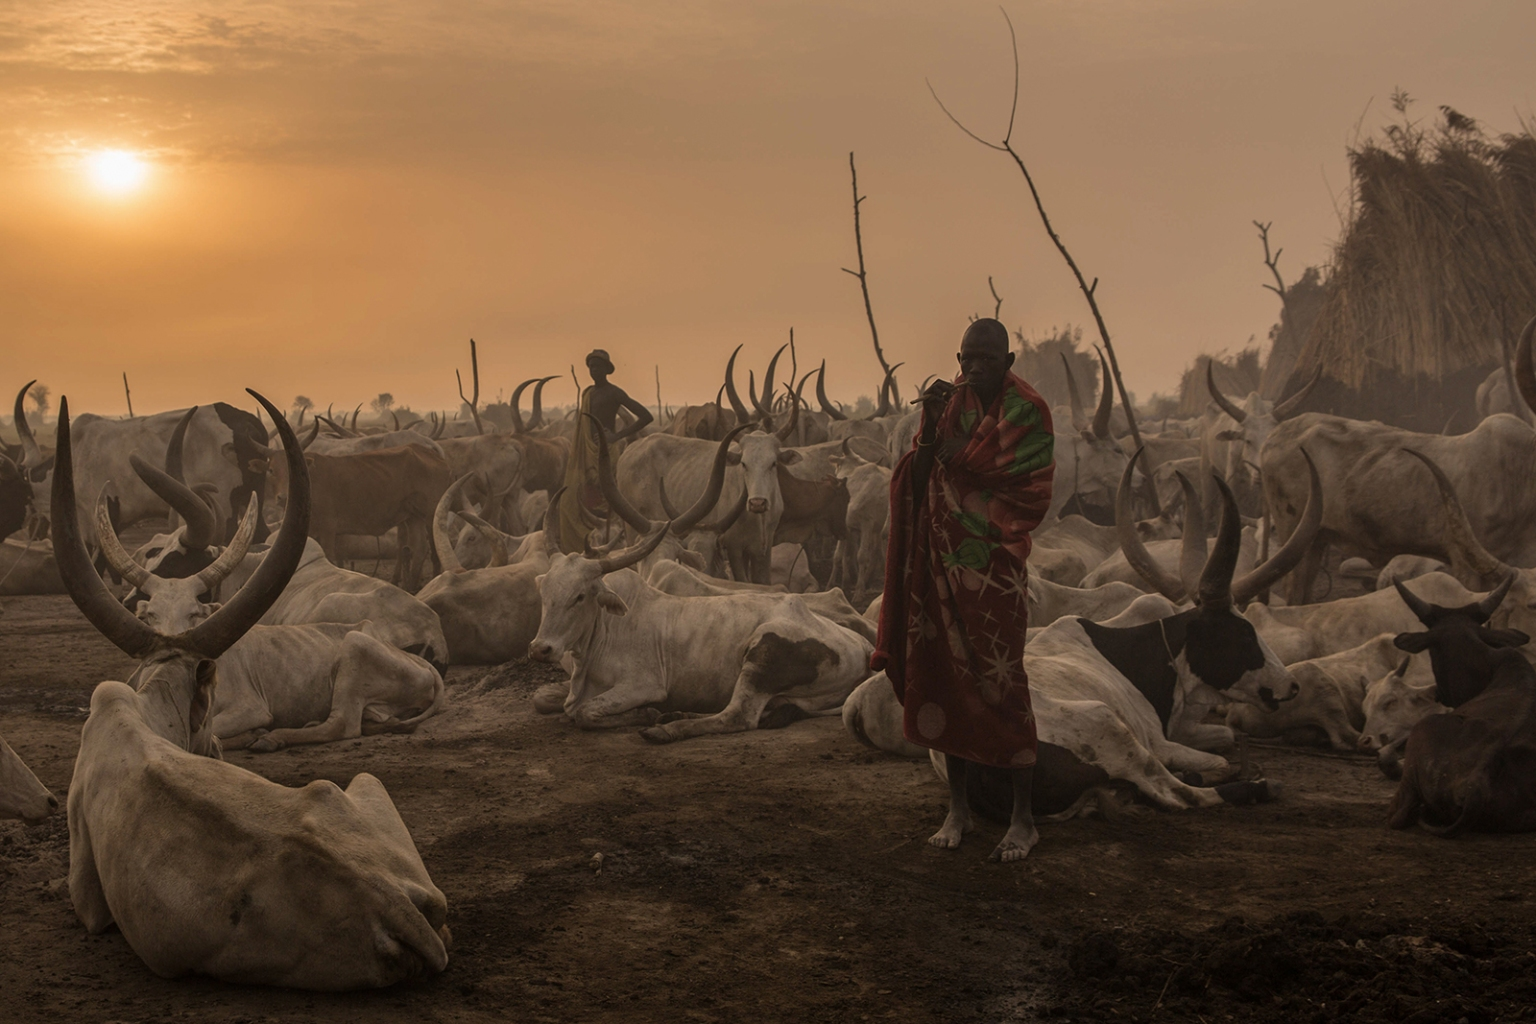 A Sudanese man from the Dinka tribe stands in the early morning at a cattle camp in Mingkaman, South Sudan, on March 3. STEFANIE GLINSKI/AFP/Getty Images